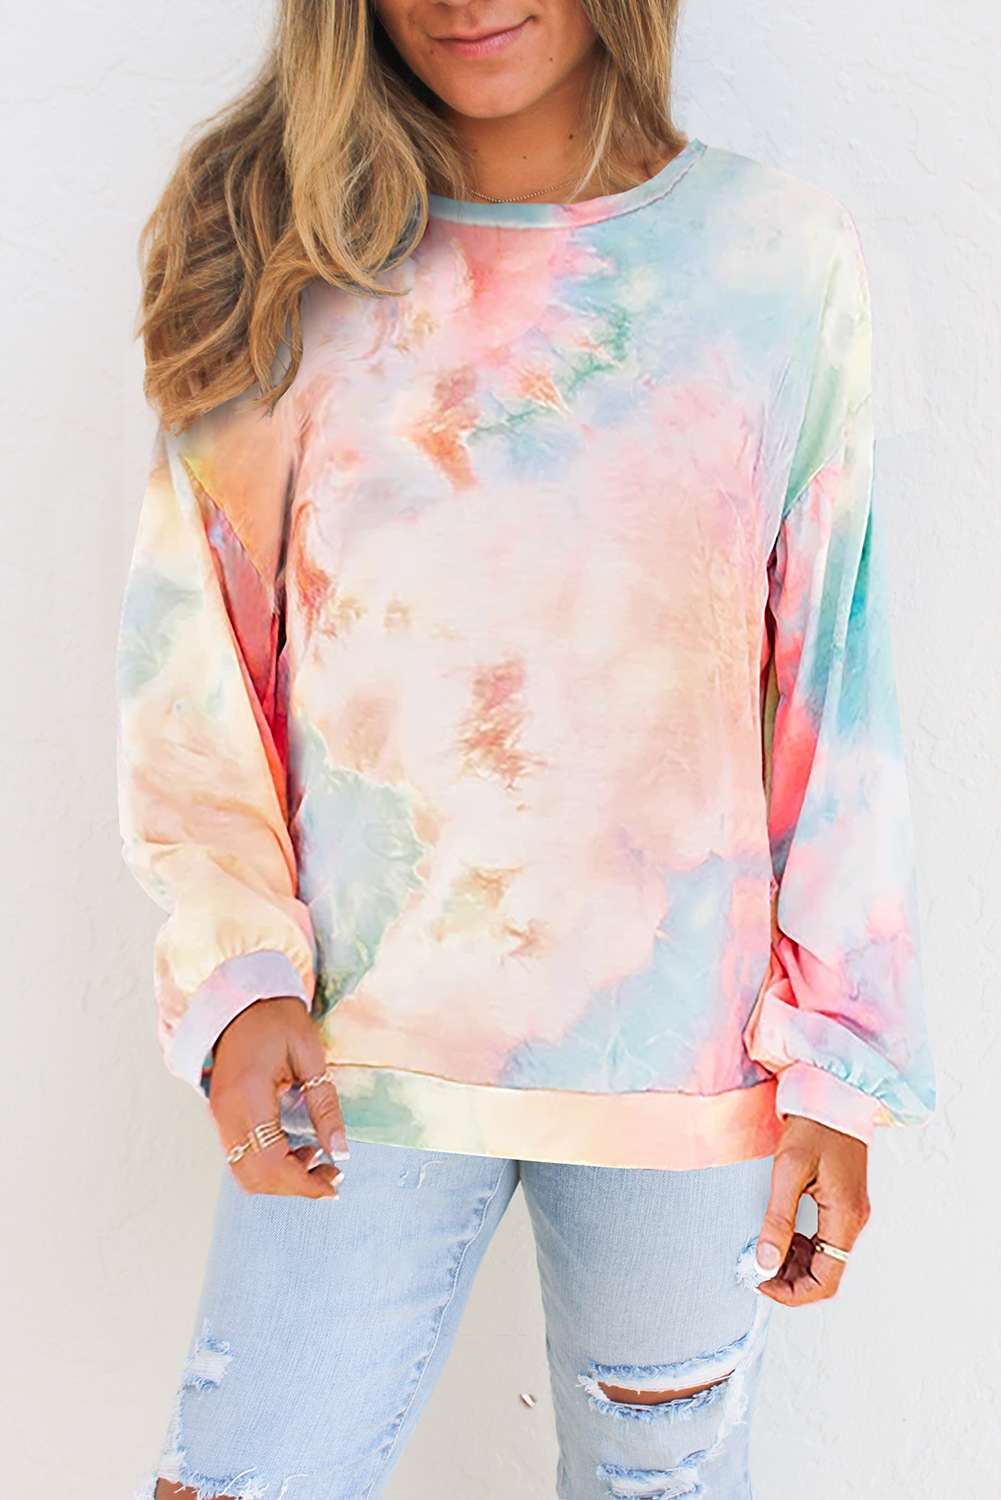 autumn new loose casual literal printing long-sleeved round neck ladies sweater NSSI2466